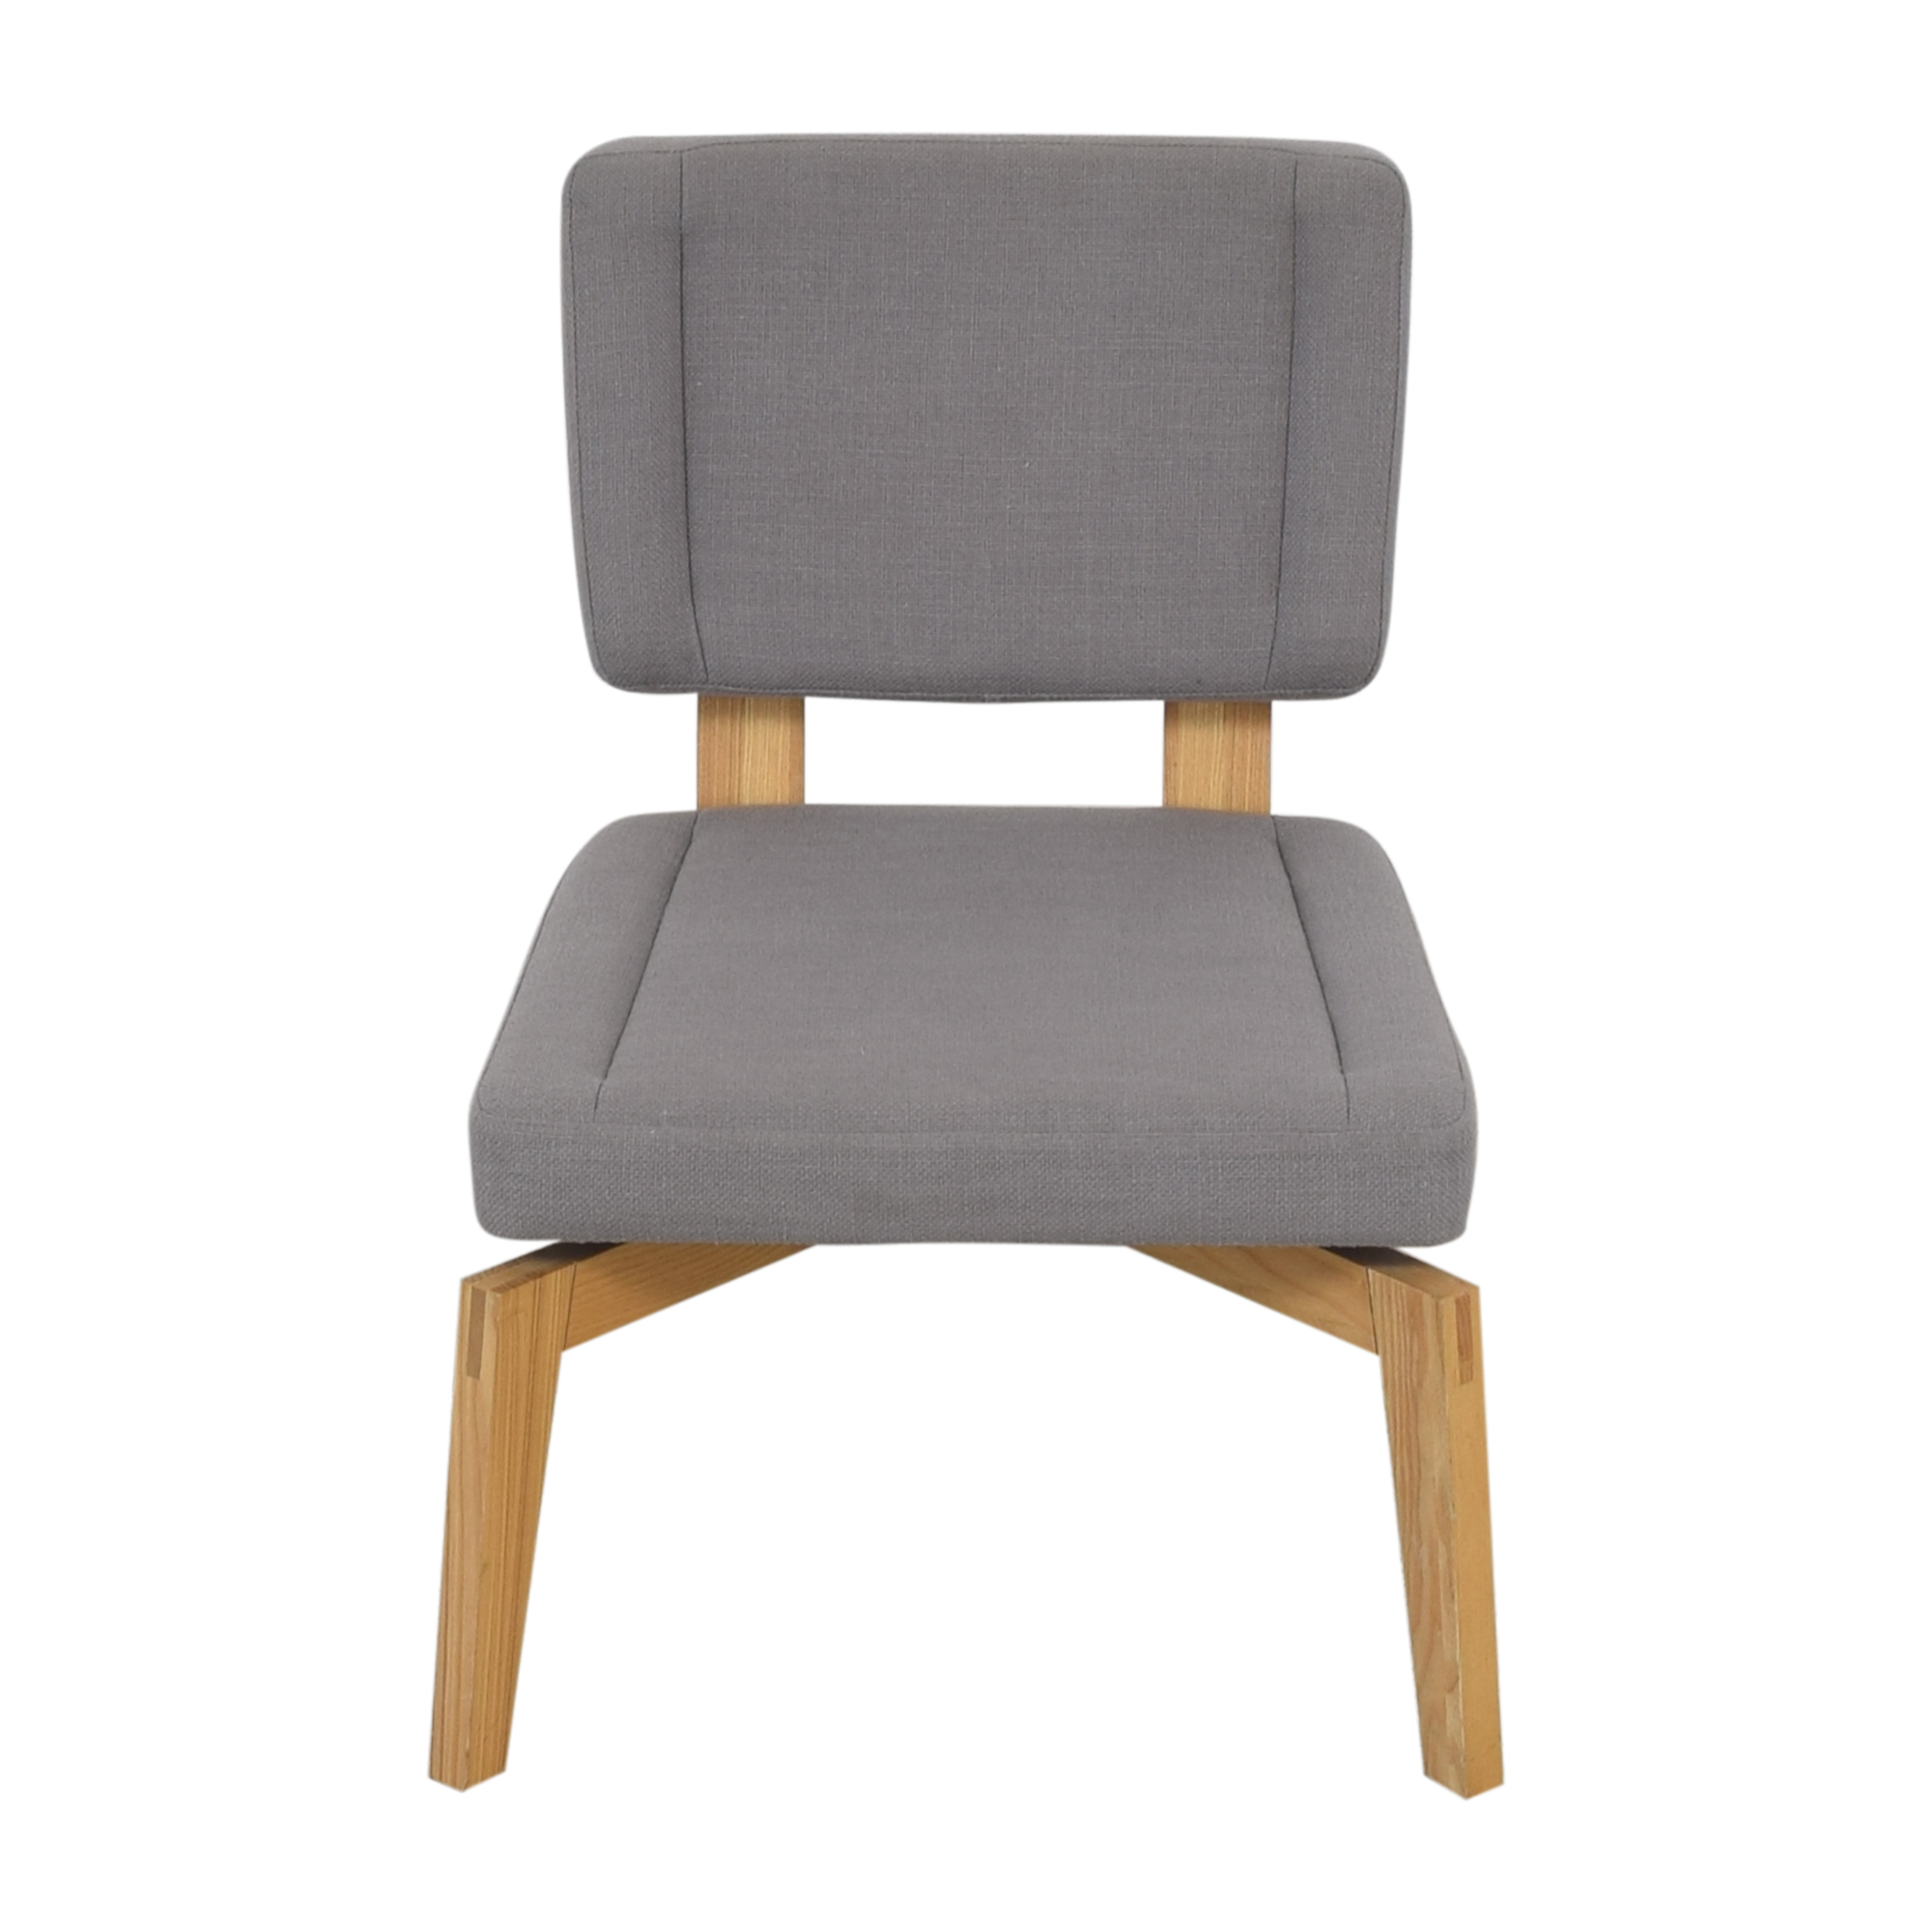 CB2 CB2 Lounge Chair with Ottoman coupon